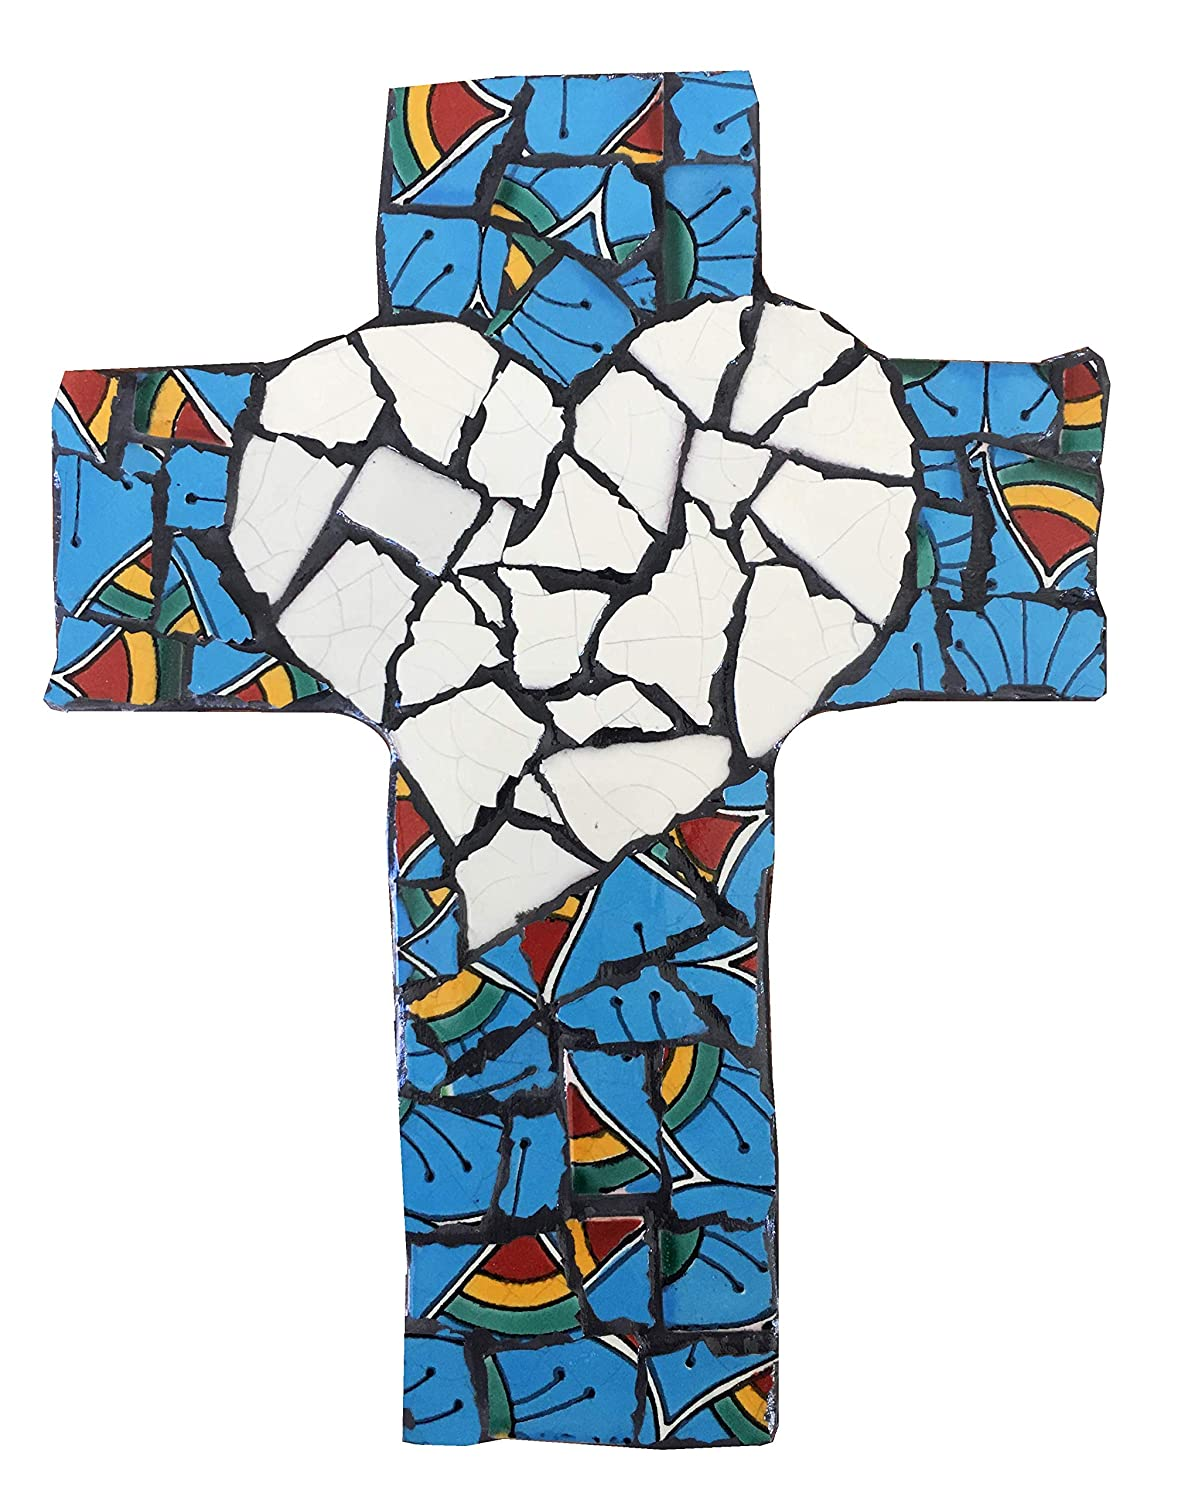 Teal Mexican Tile Talavera Wall Cross 9 inch X 6 inch Handcrafted Mosaic Ivory Heart with Teal Mexican Ceramic